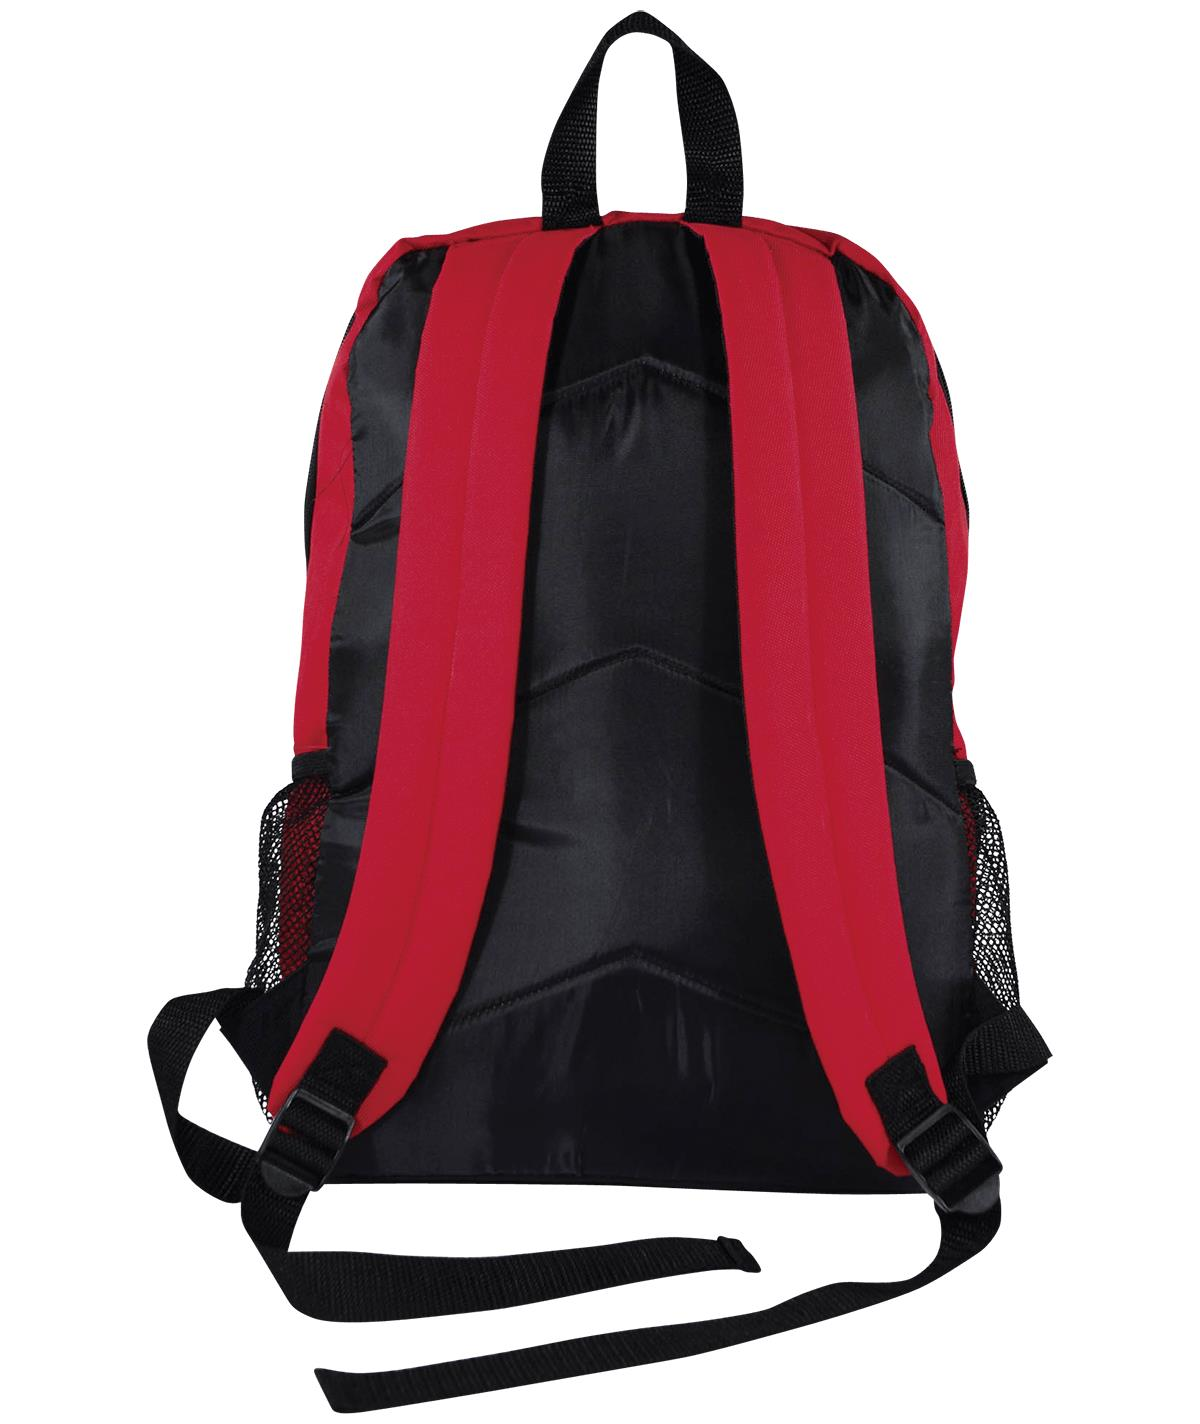 Chassé Shine Backpack